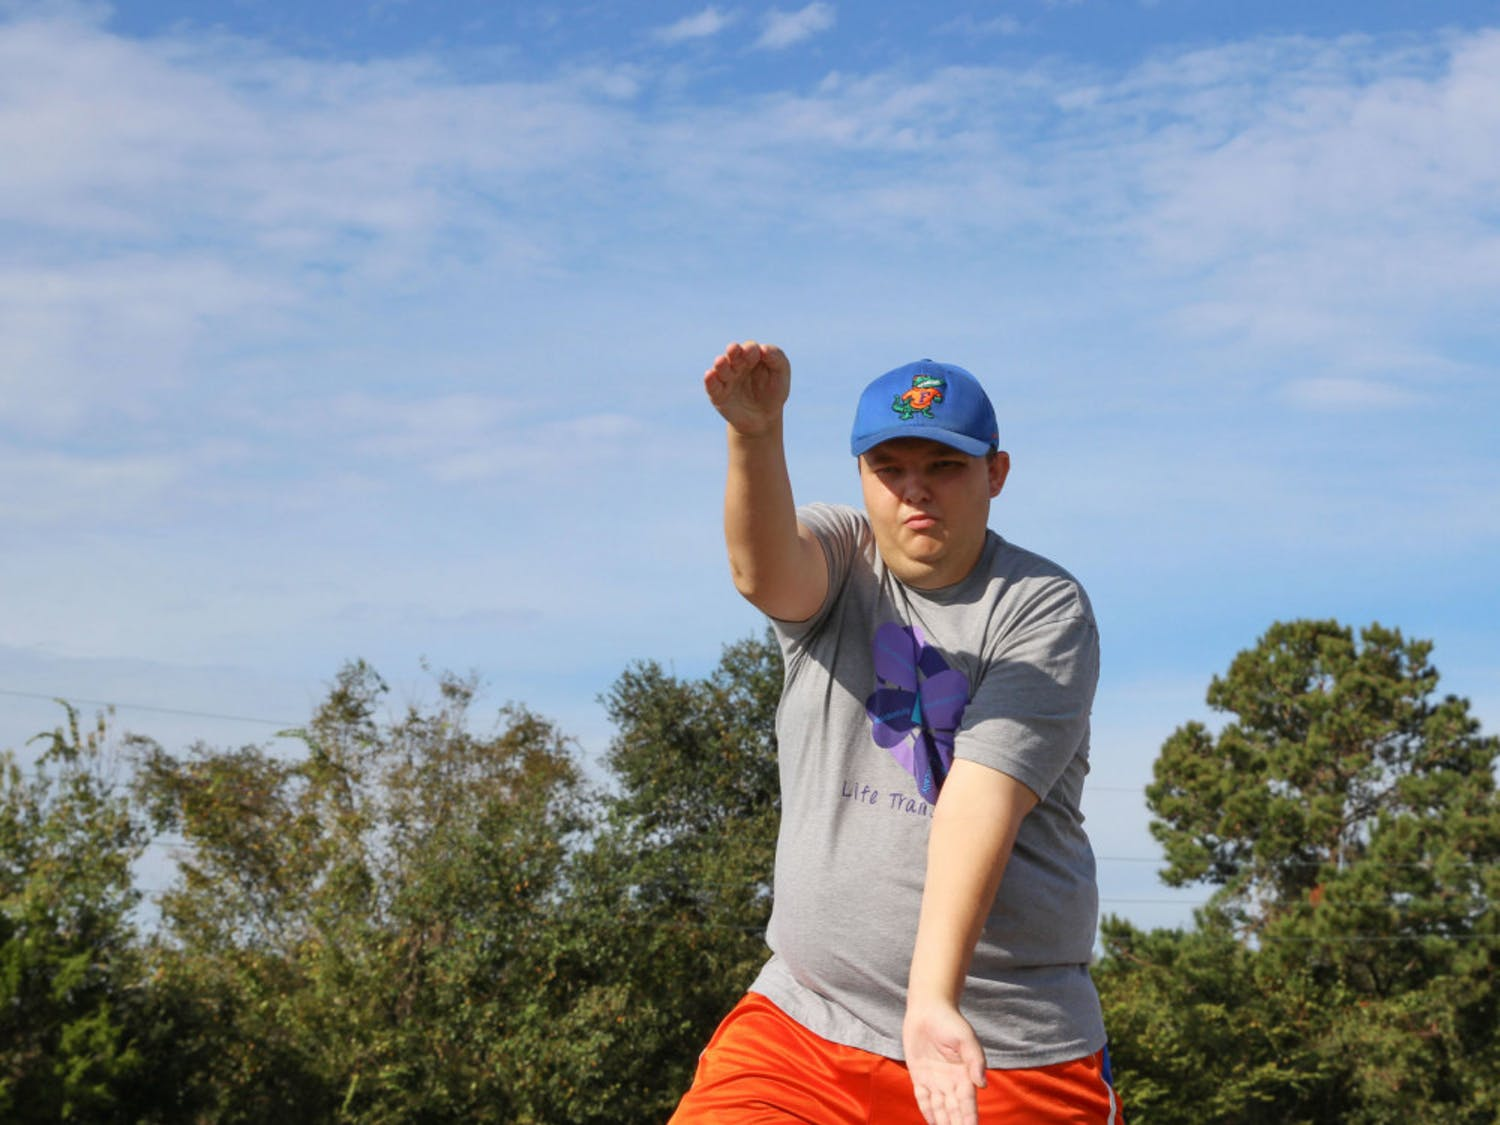 """24-year-old Billy Moody gives a big Gator chomp during his walk at theFourth Annual """"Run With The Cops"""" walk locatedat the Santa Fe track. This was Moody's second time attending the walk, and he wasaccompaniedby fellow members of the """"Life Transition Skills""""organization."""